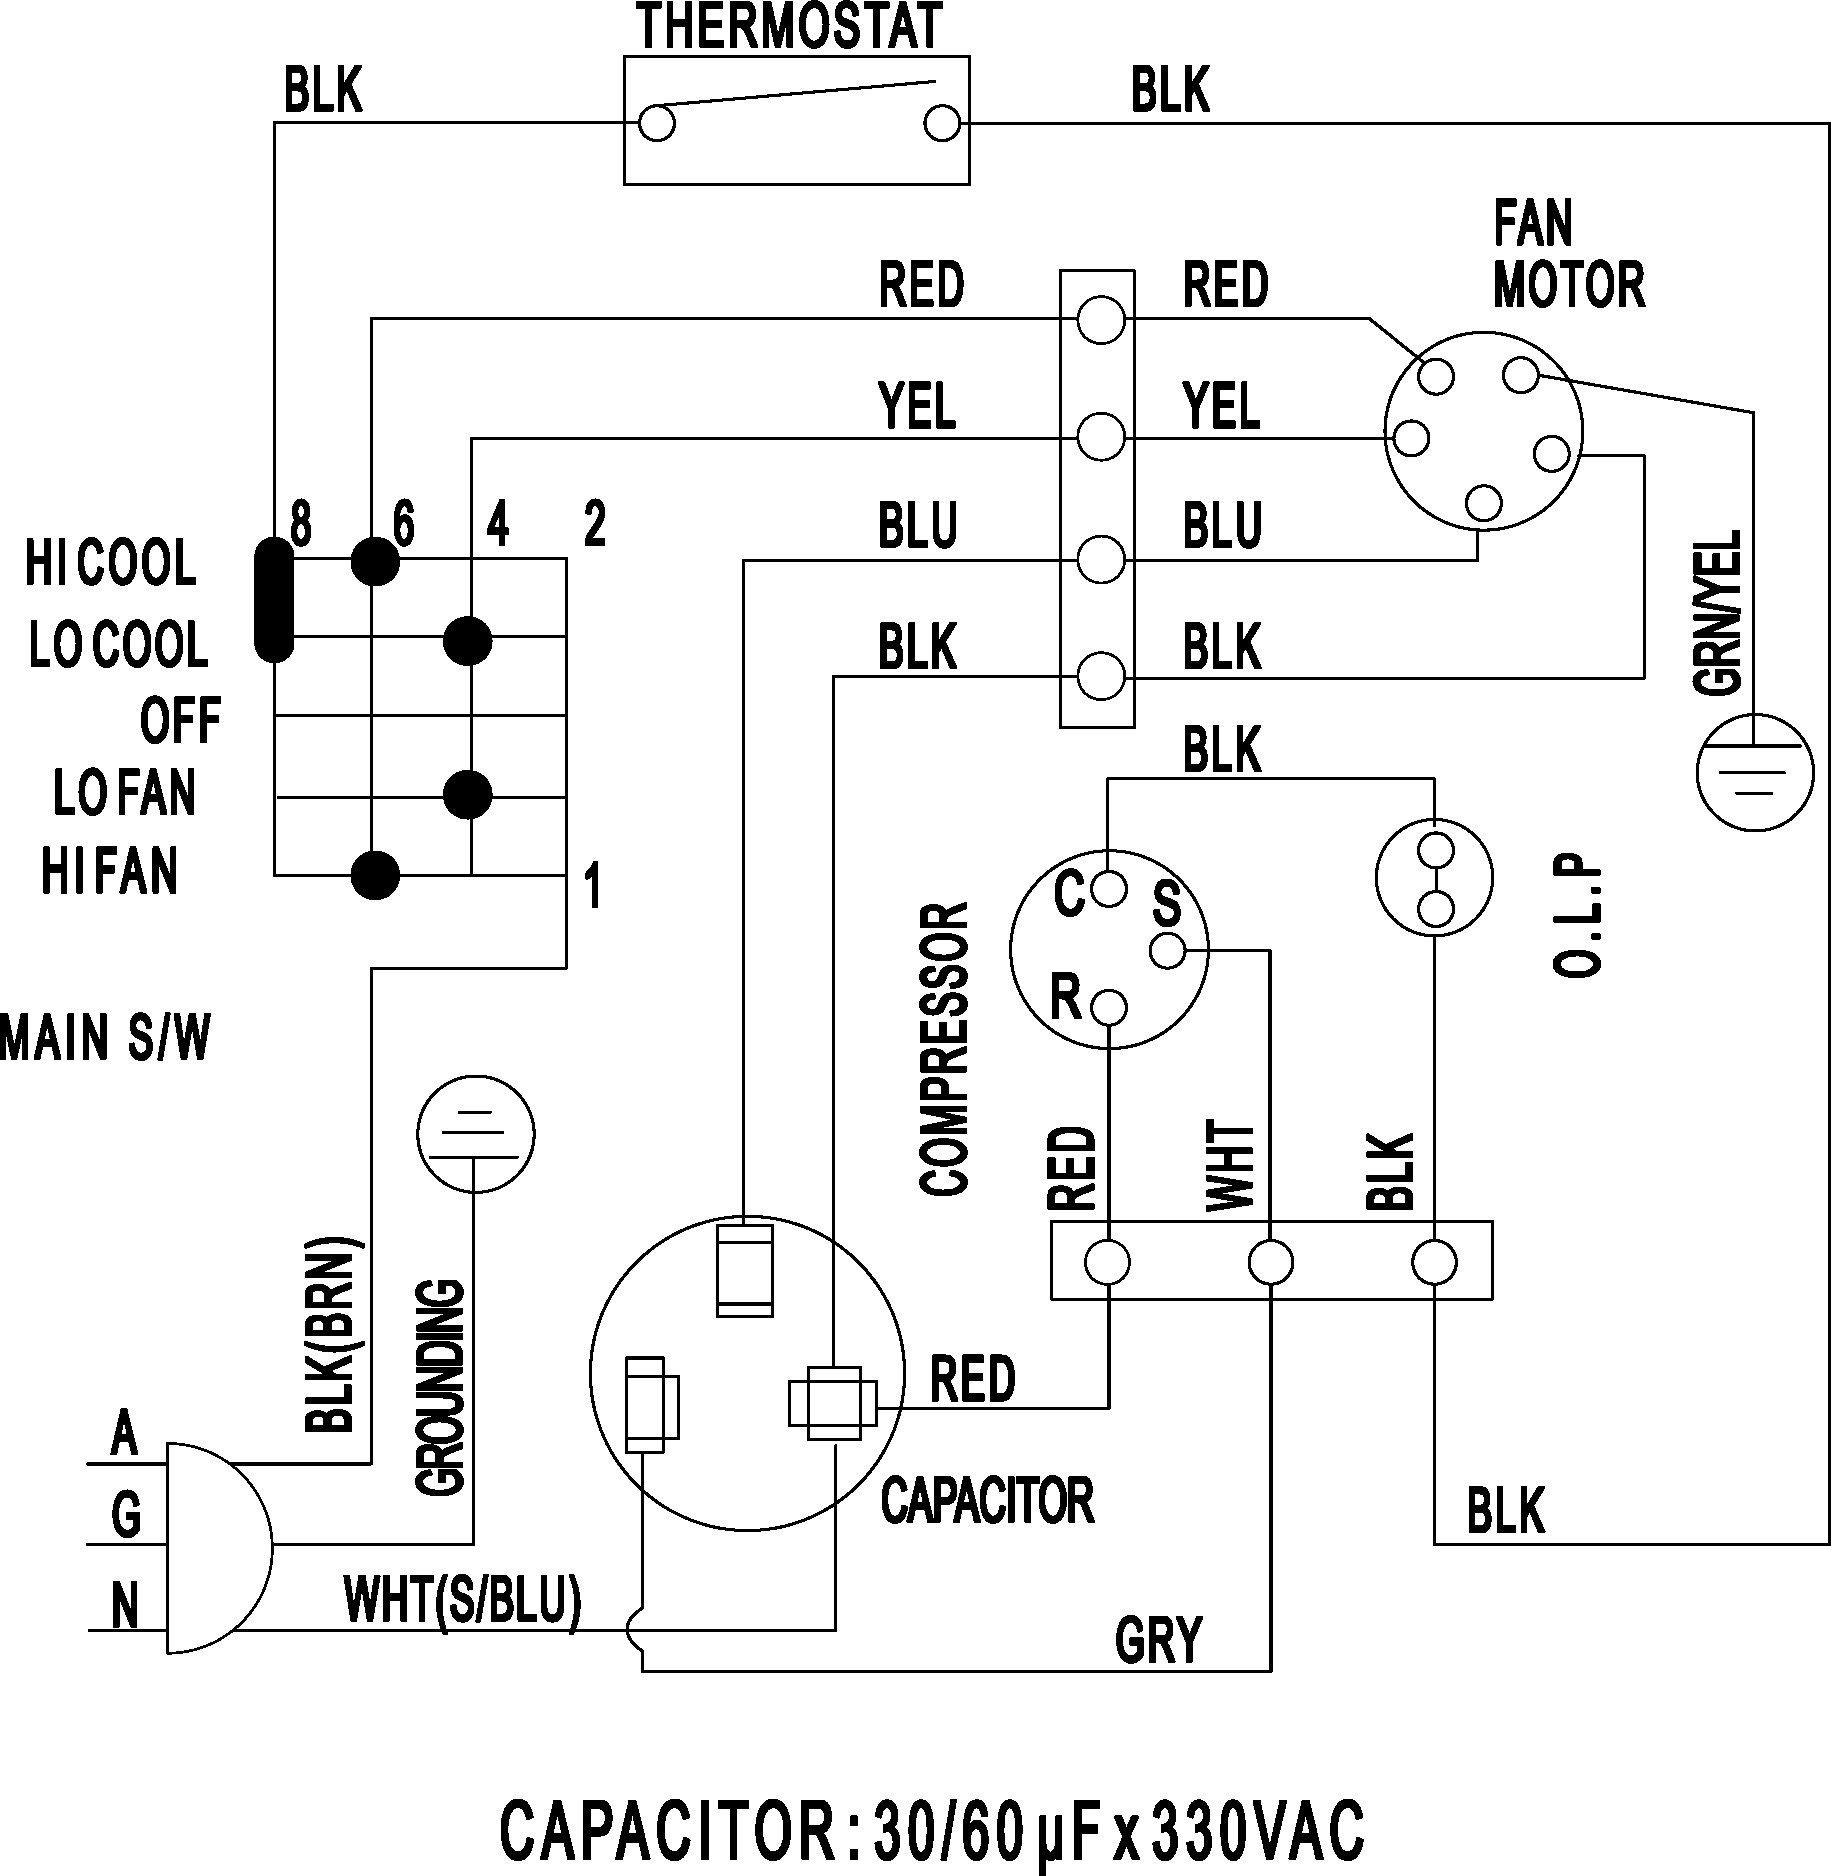 Wiring Diagram Symbols Hvac Wiring Diagram Ac Split Copy Carrier Air Conditioner Fresh Diagrams Ac Wiring Electrical Circuit Diagram Electrical Wiring Diagram